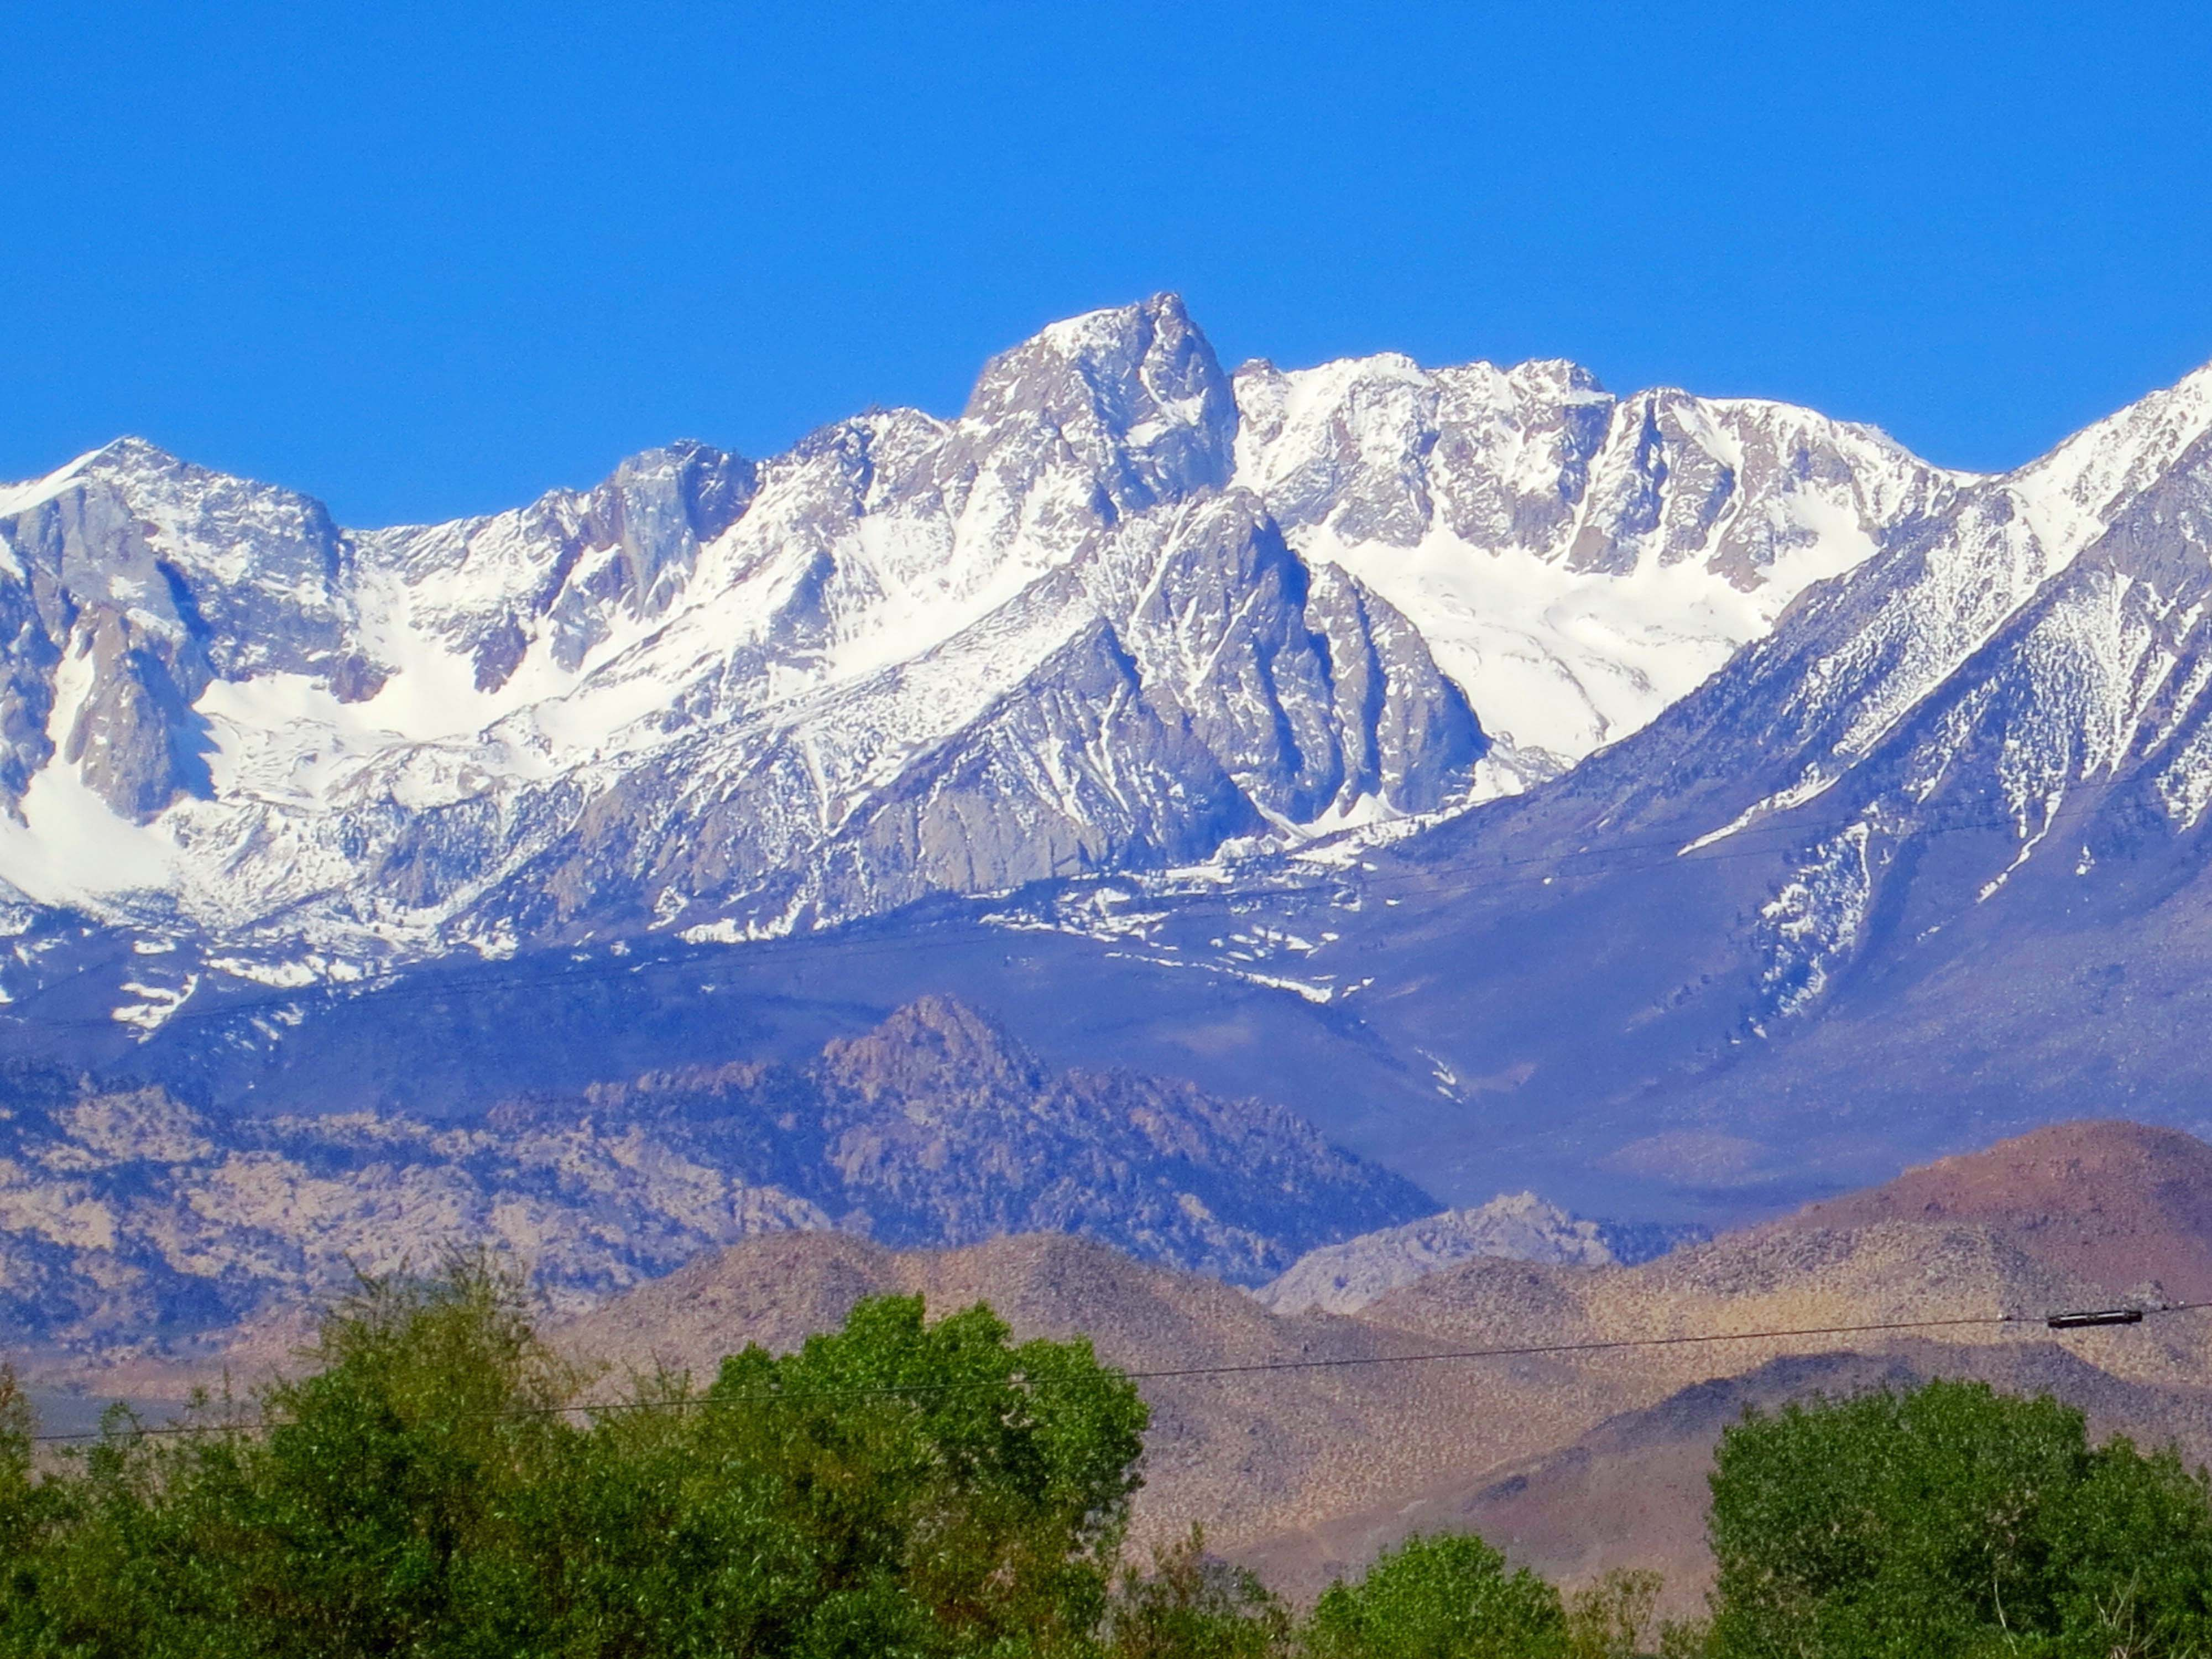 Driving up California's Highway 395 provides and ever changing perspective of the eastern Sierra Nevada Mountains.